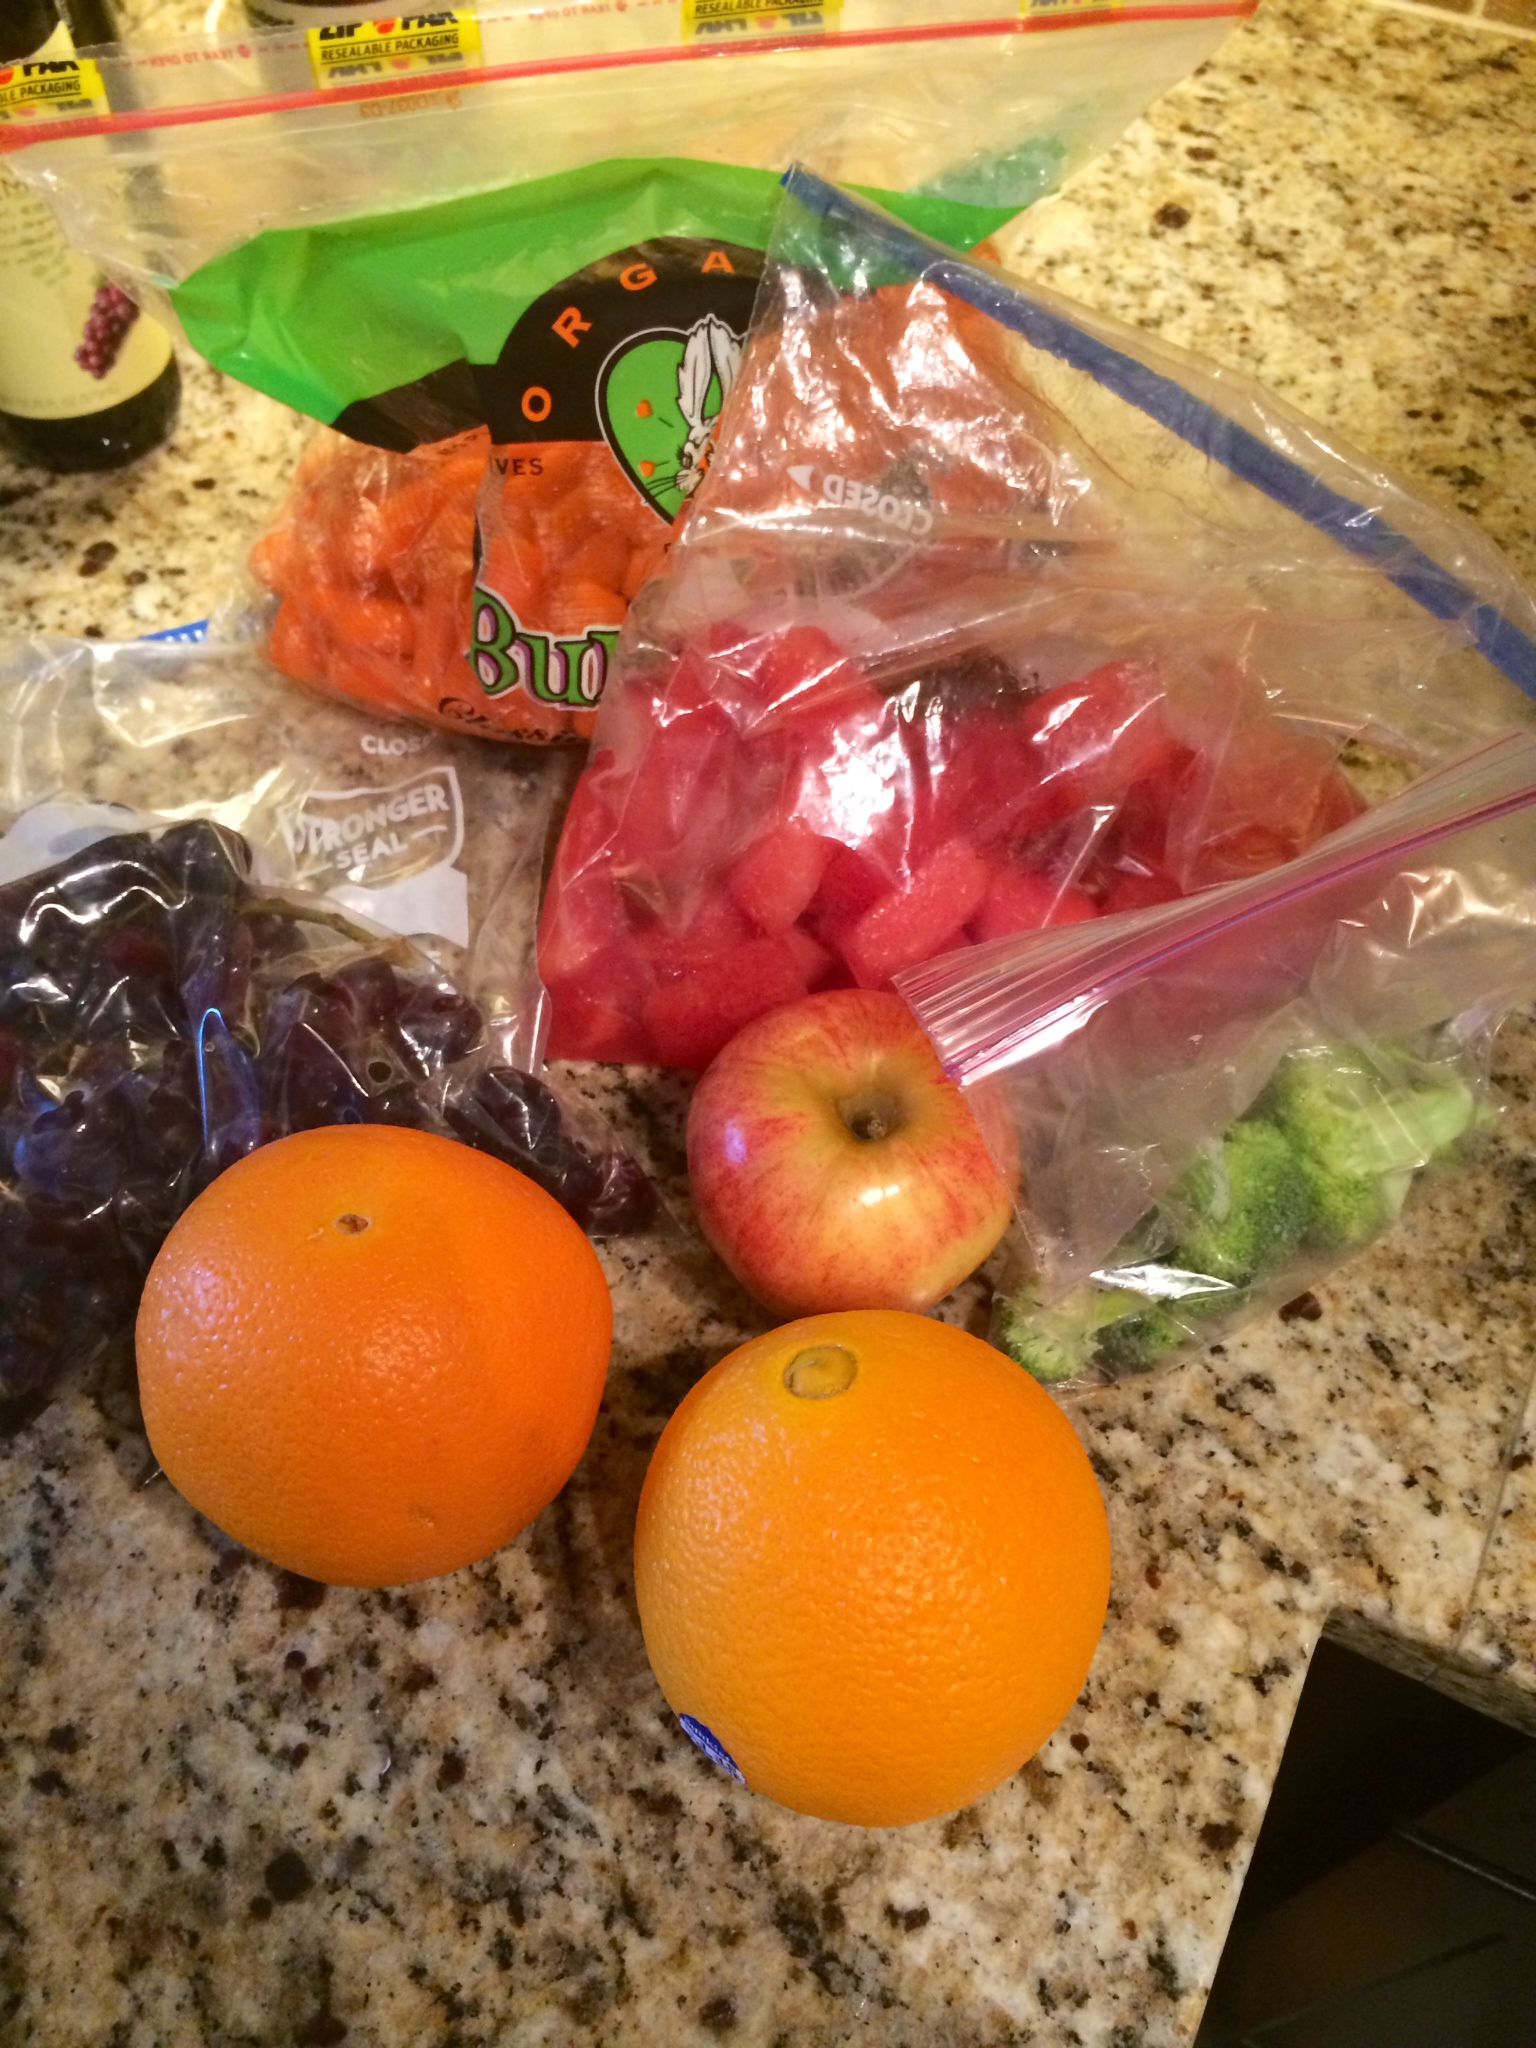 Fruits and veggies for the road.